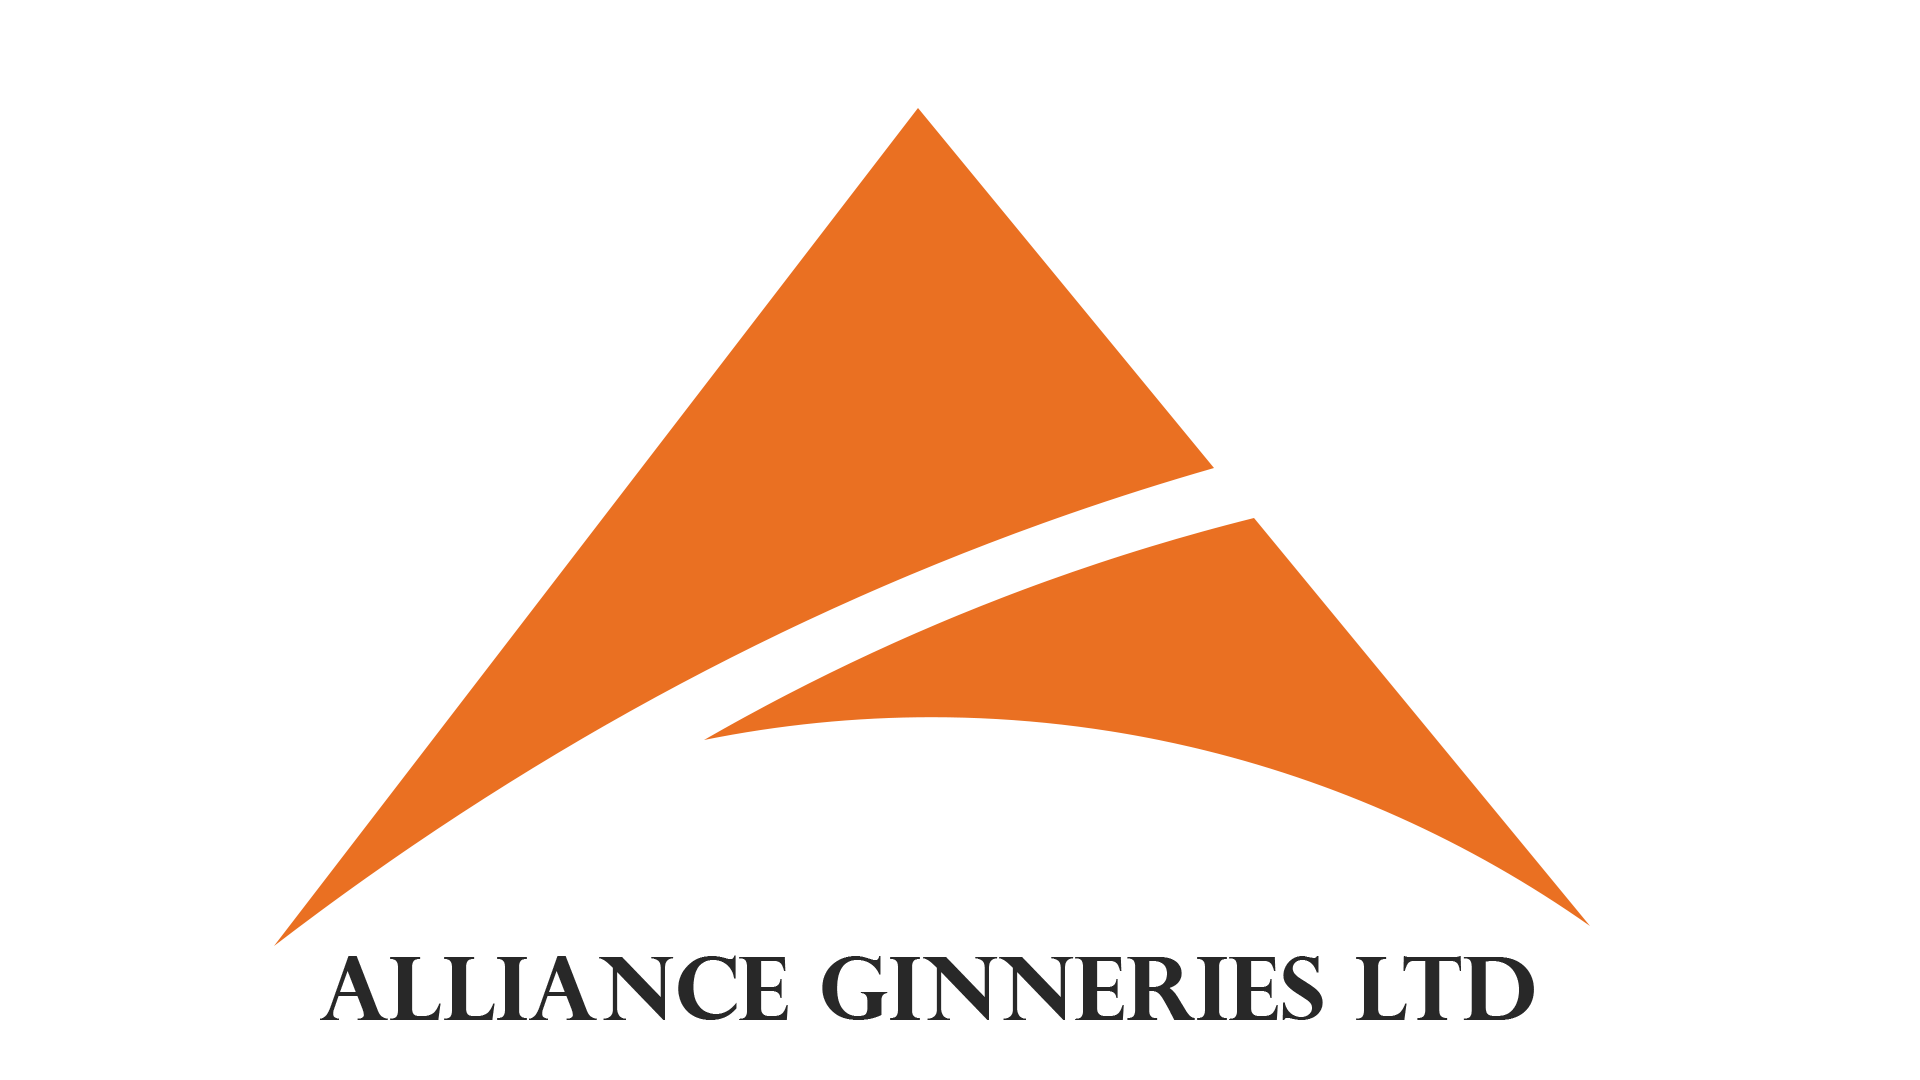 https://cottonmadeinafrica.org/wp-content/uploads/Alliance-Ginneries-LTD-Zambia.png